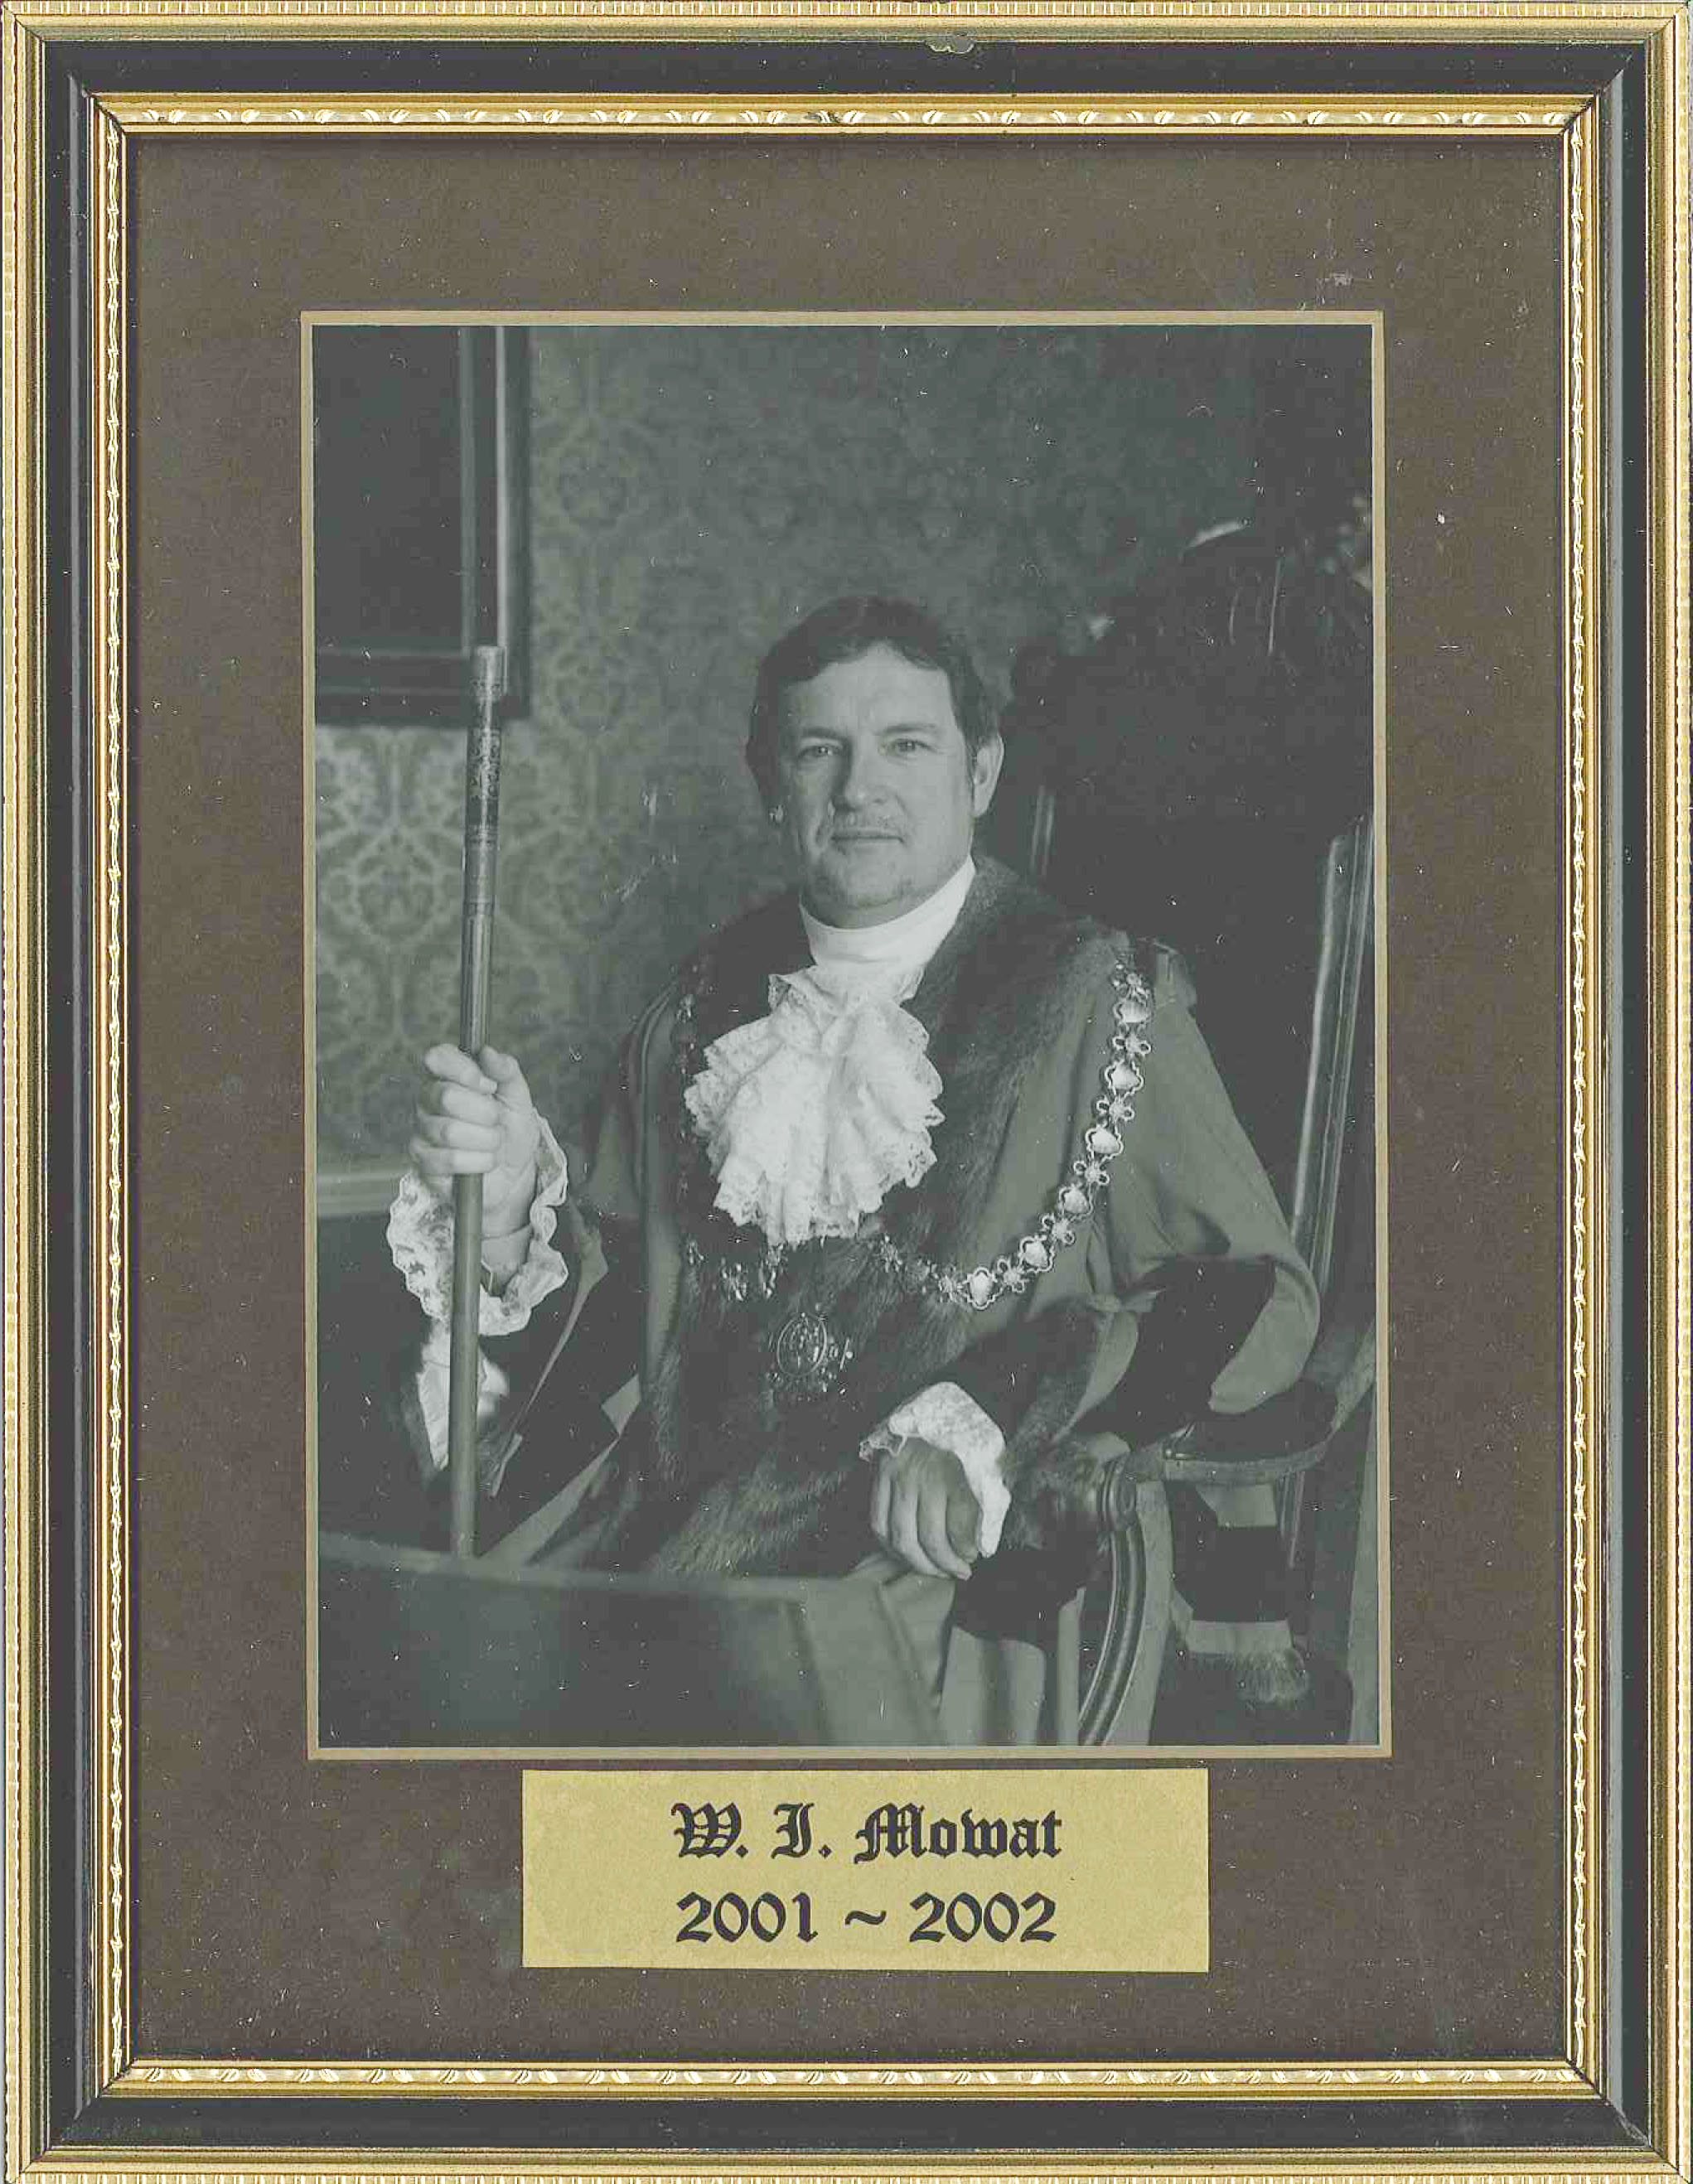 Image of /W.I. Mowat